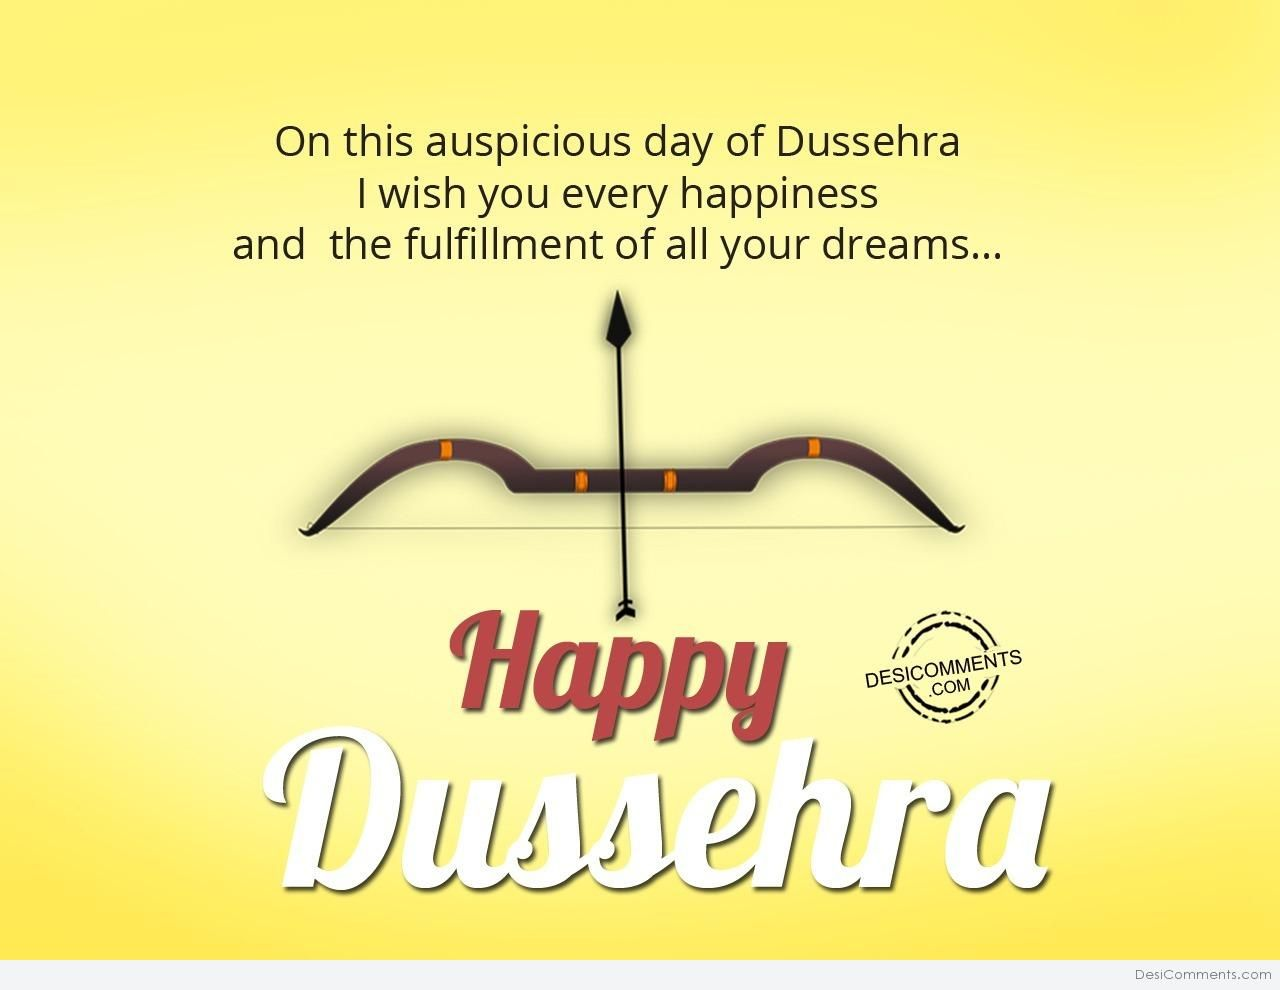 Happy Dasara 2020 Images Wishes Quotes Greetings Sms Messages Whatsapp Dp In 2020 Quotes Sms Message Messages